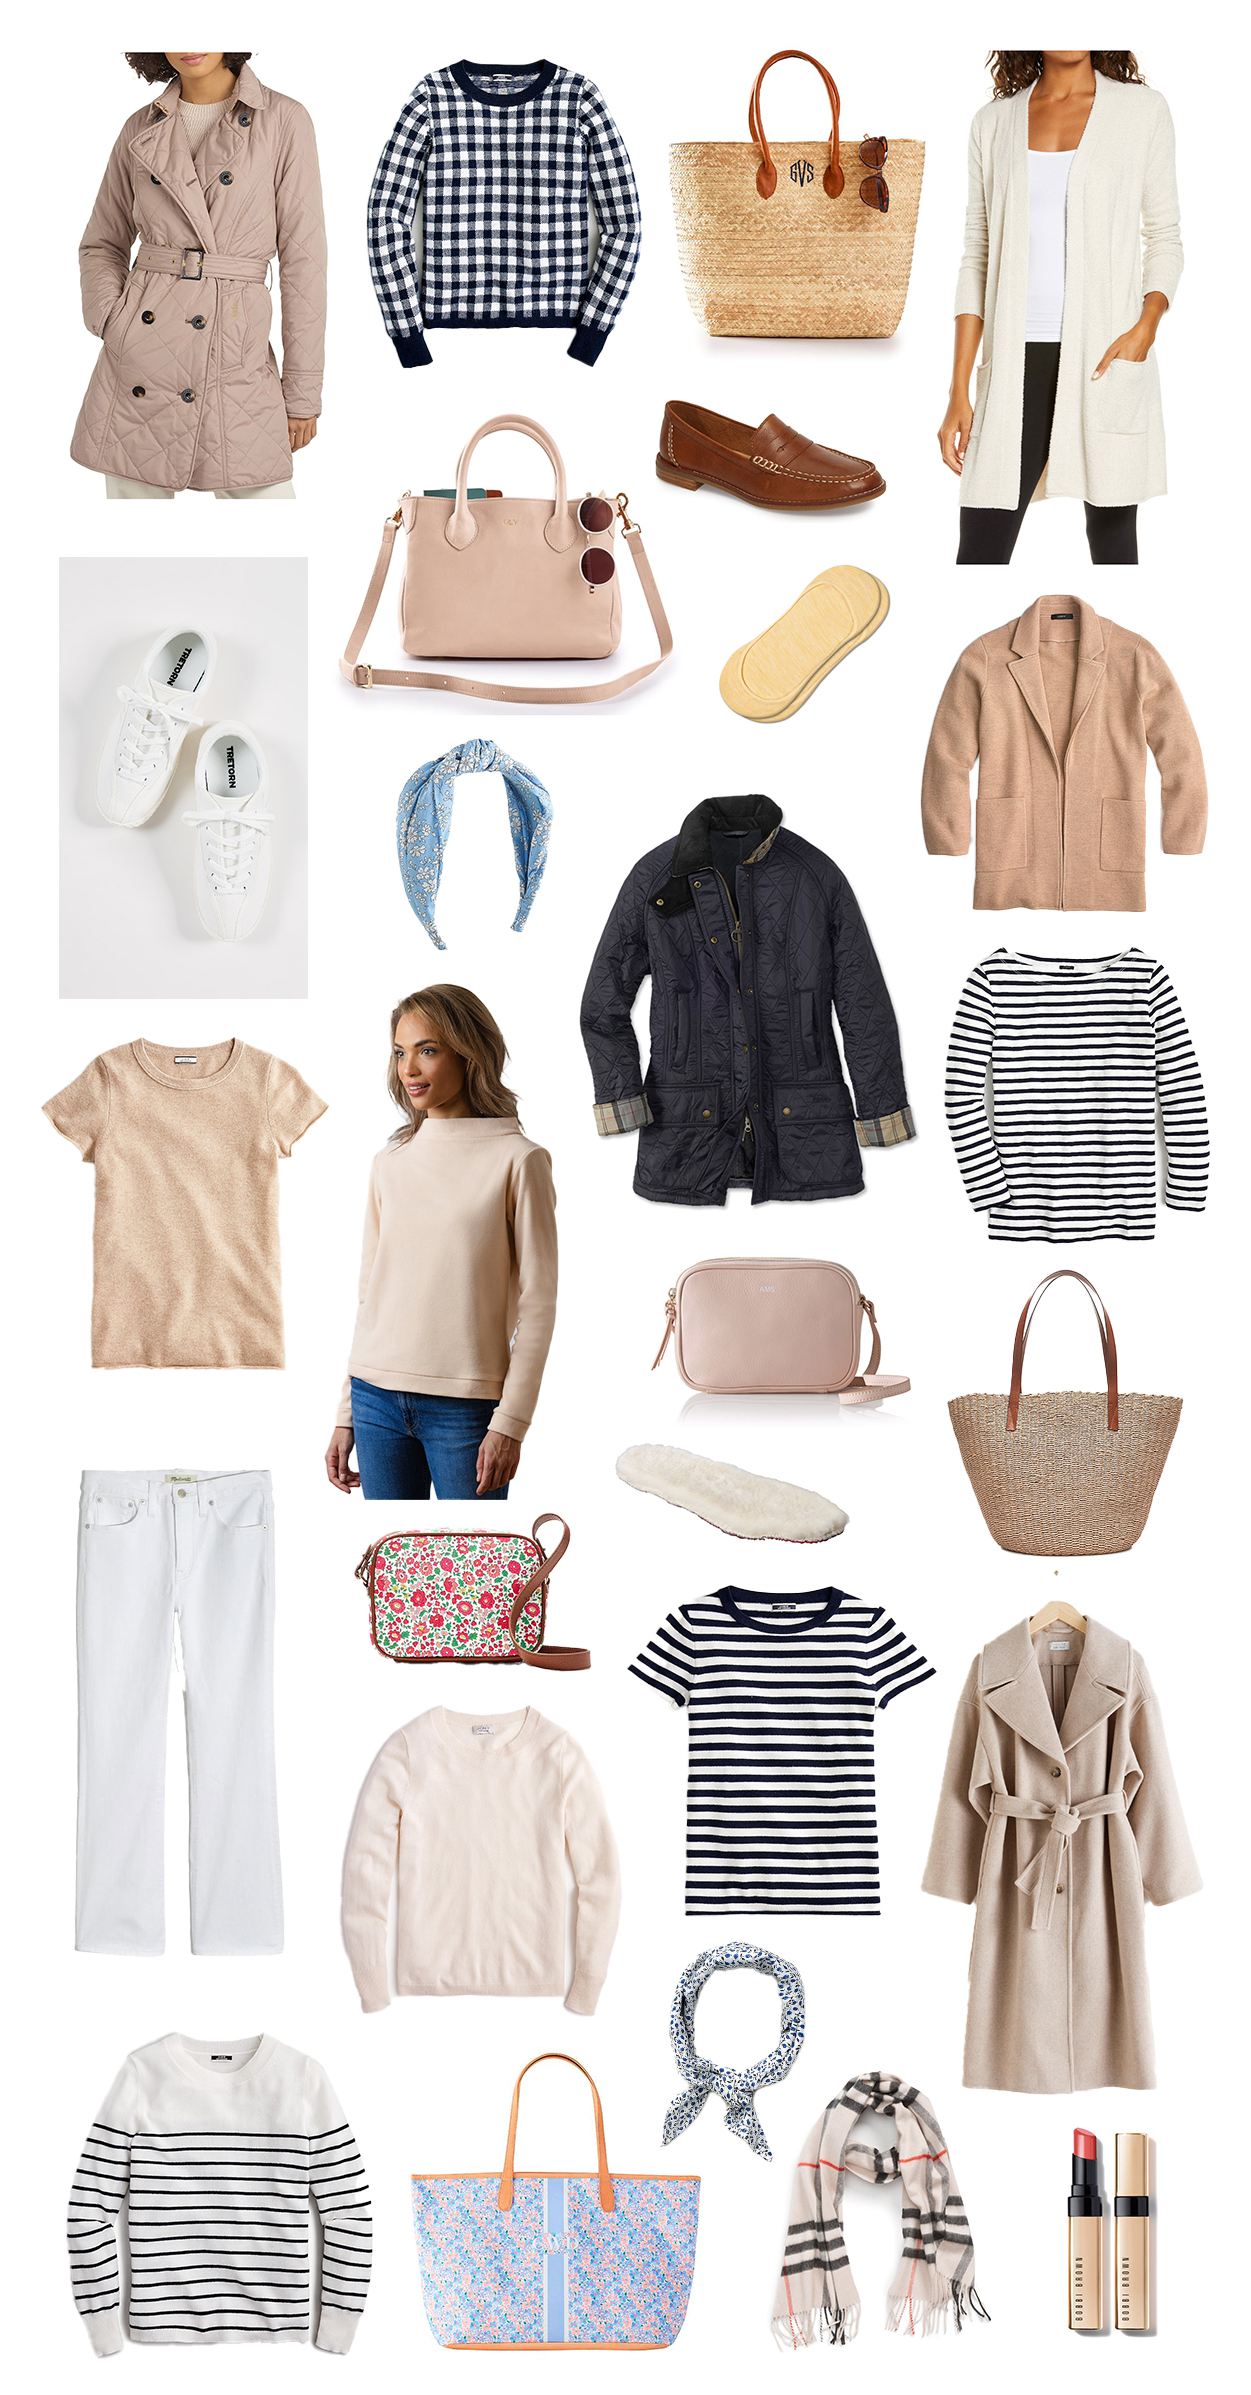 How to Look Springy and Stay Warm | Women's Spring Capsule Wardrobe